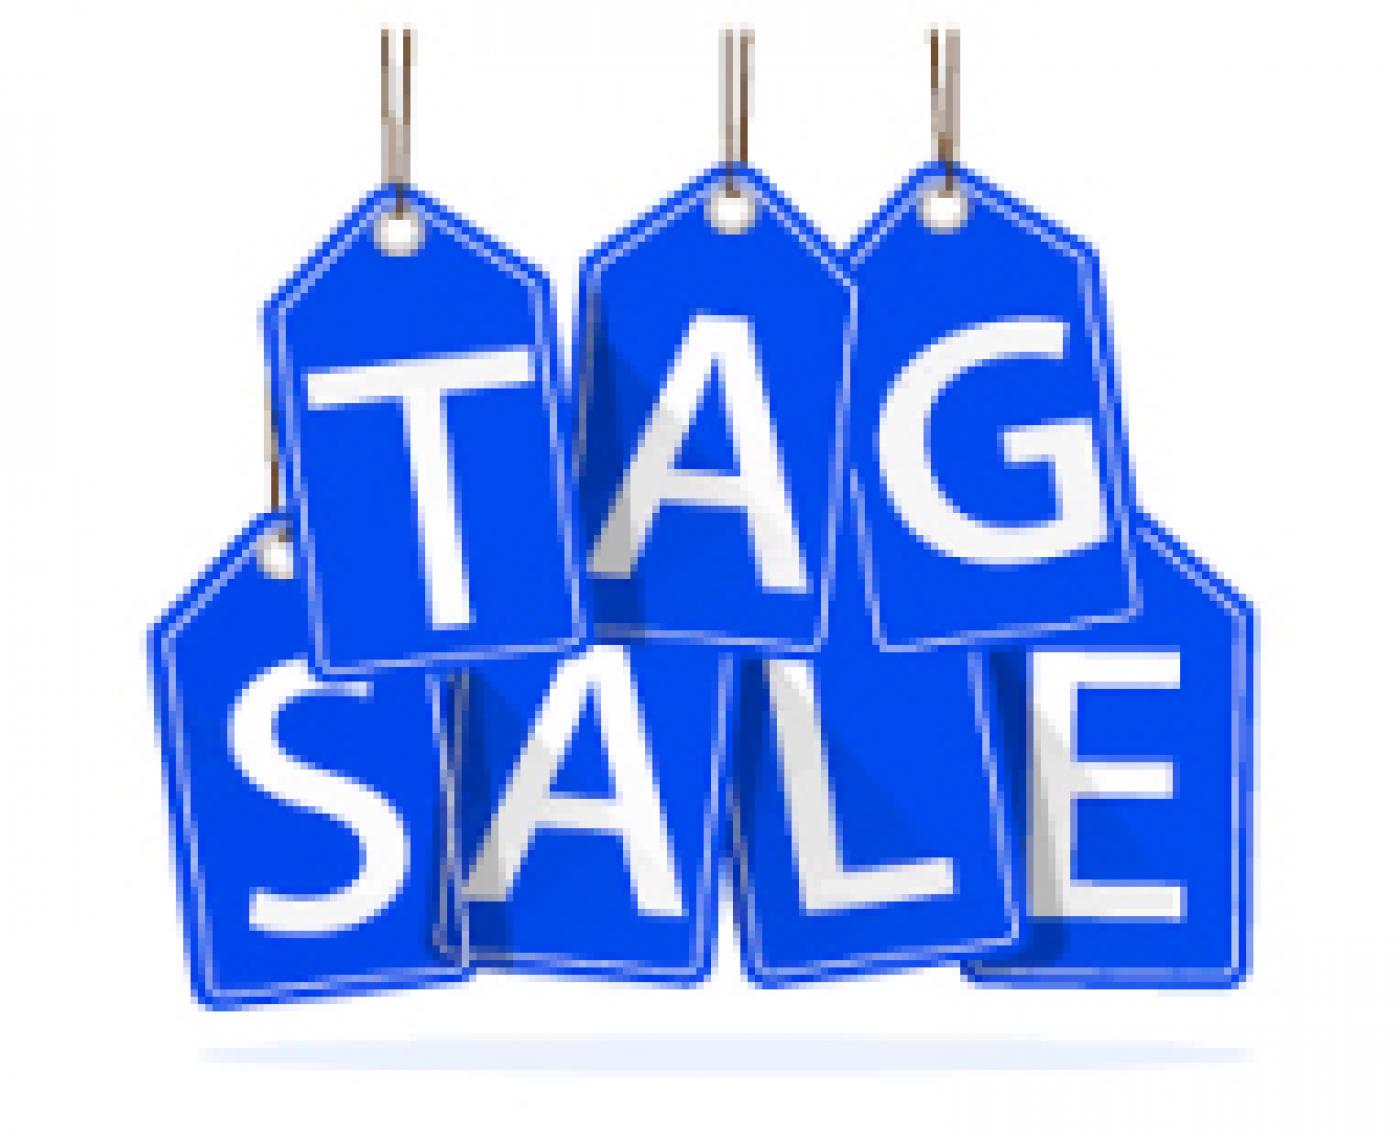 <p>The annual tag sale, open to the public, will be held June 19 outdoors on the museum's Aspe